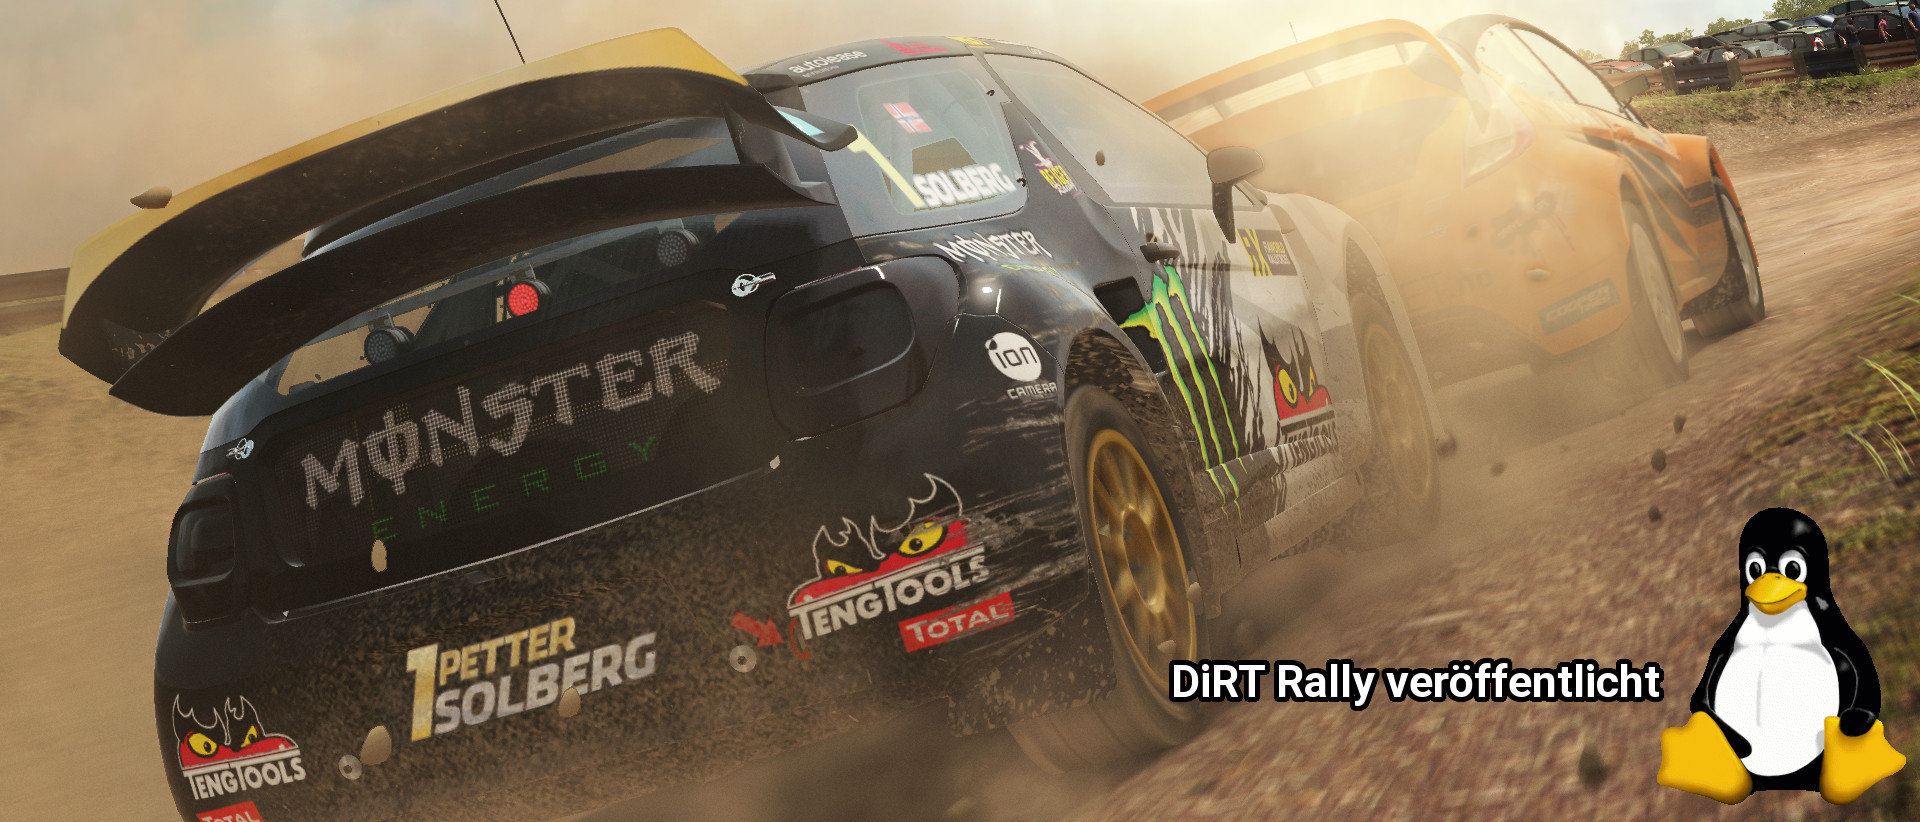 https://www.holarse-linuxgaming.de/sites/default/files/2017-03-02-1/dirt_rally_teaser_0.jpg